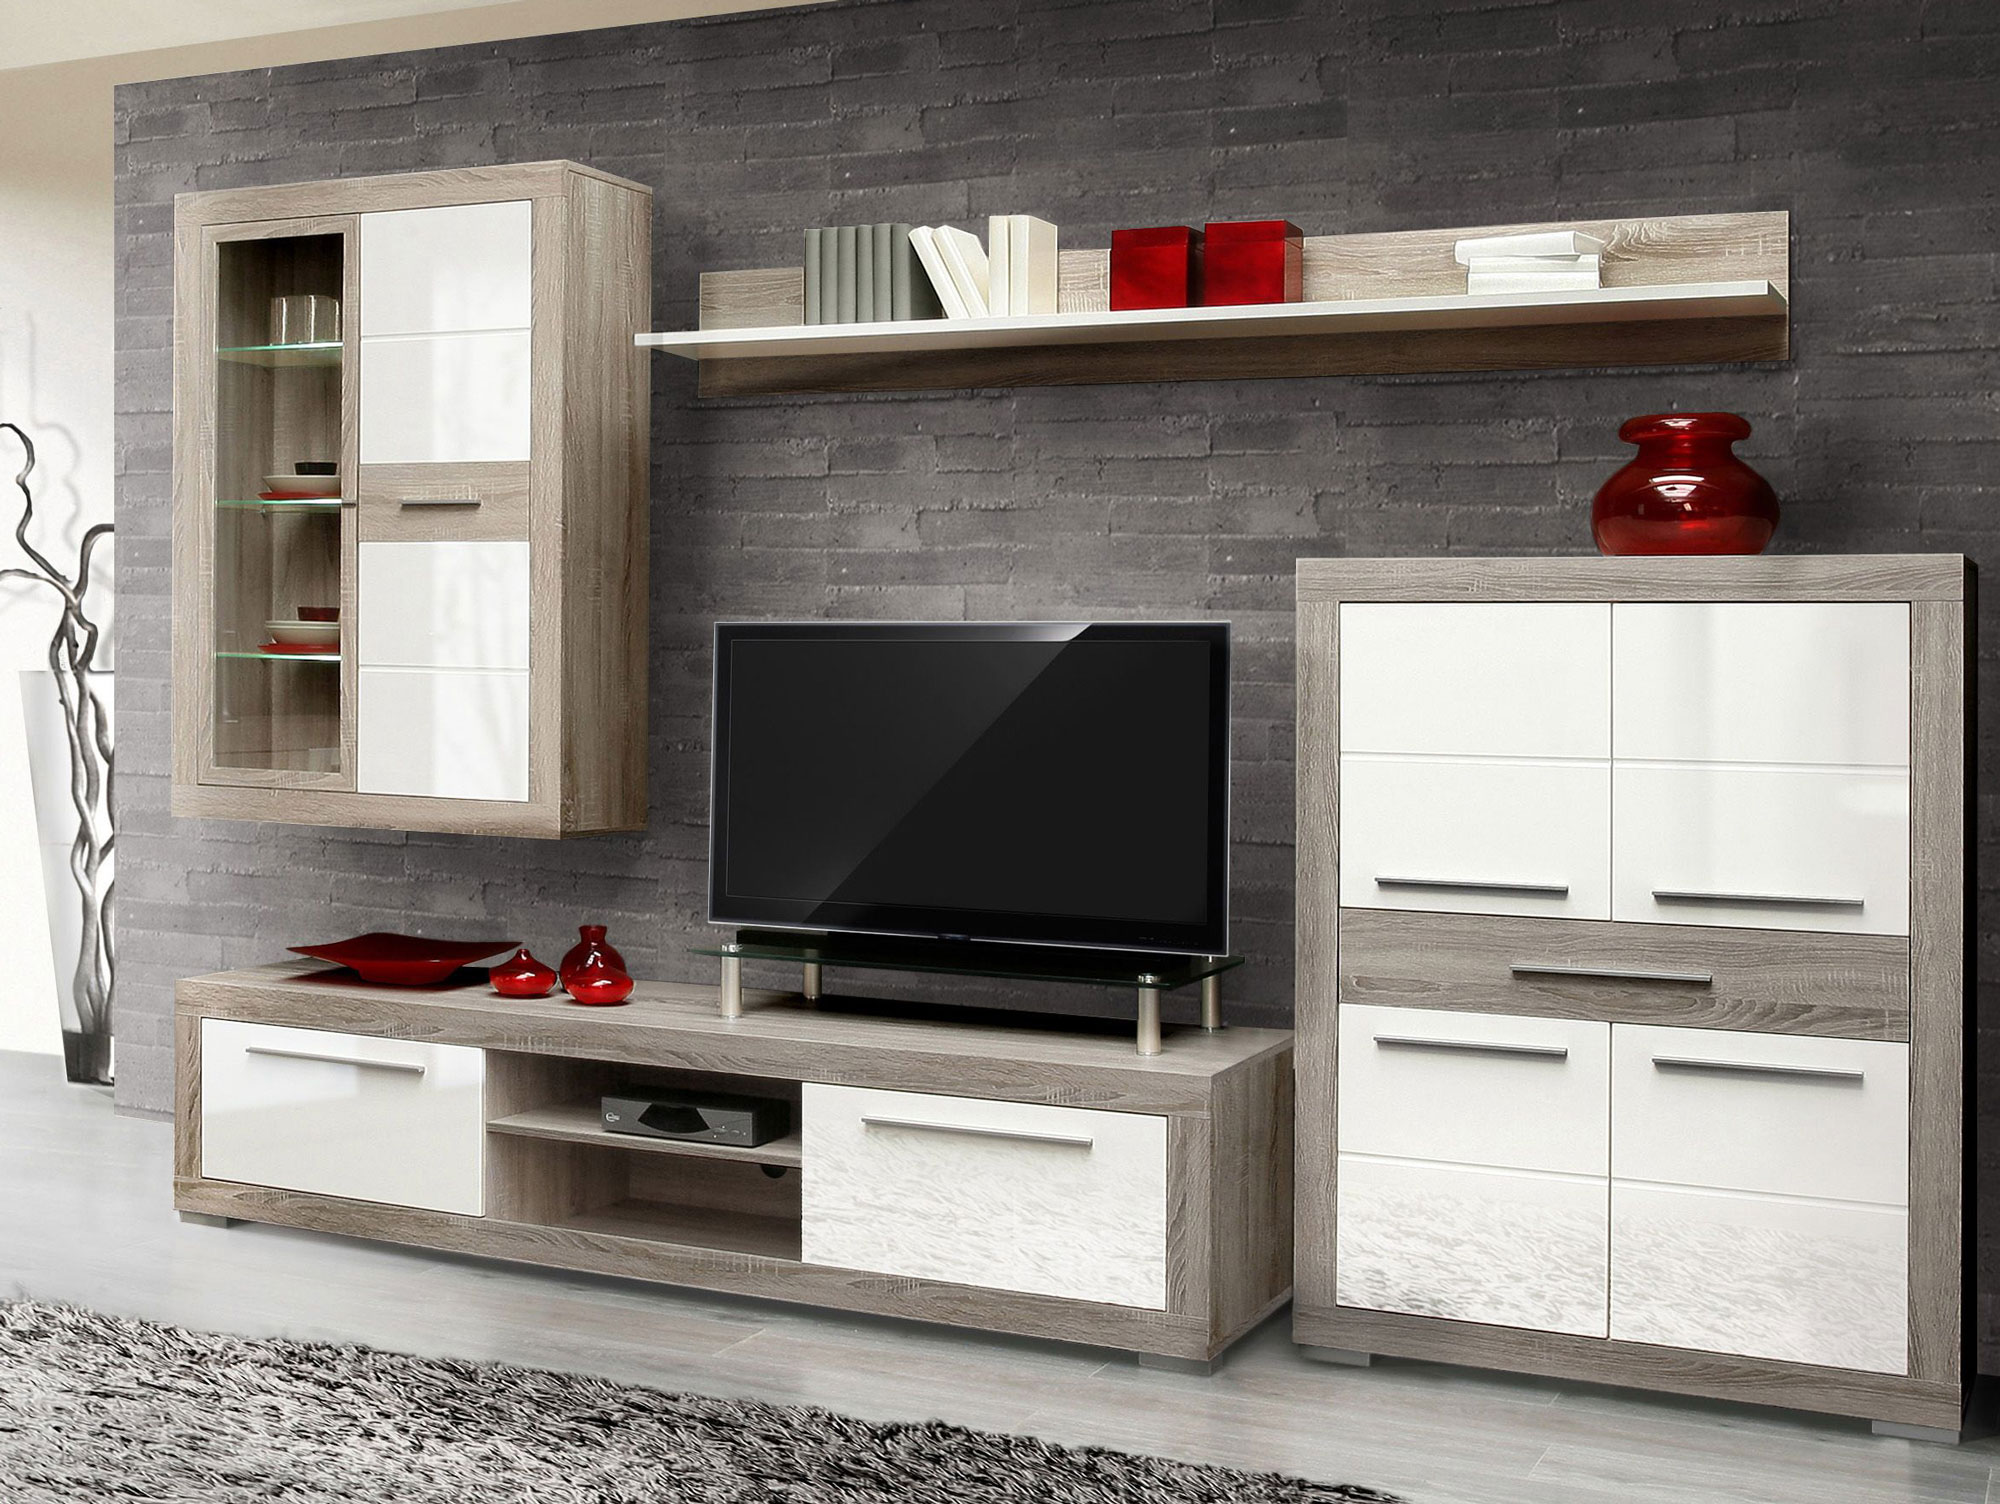 amberg ii wohnwand eiche sonoma grau wei hg. Black Bedroom Furniture Sets. Home Design Ideas